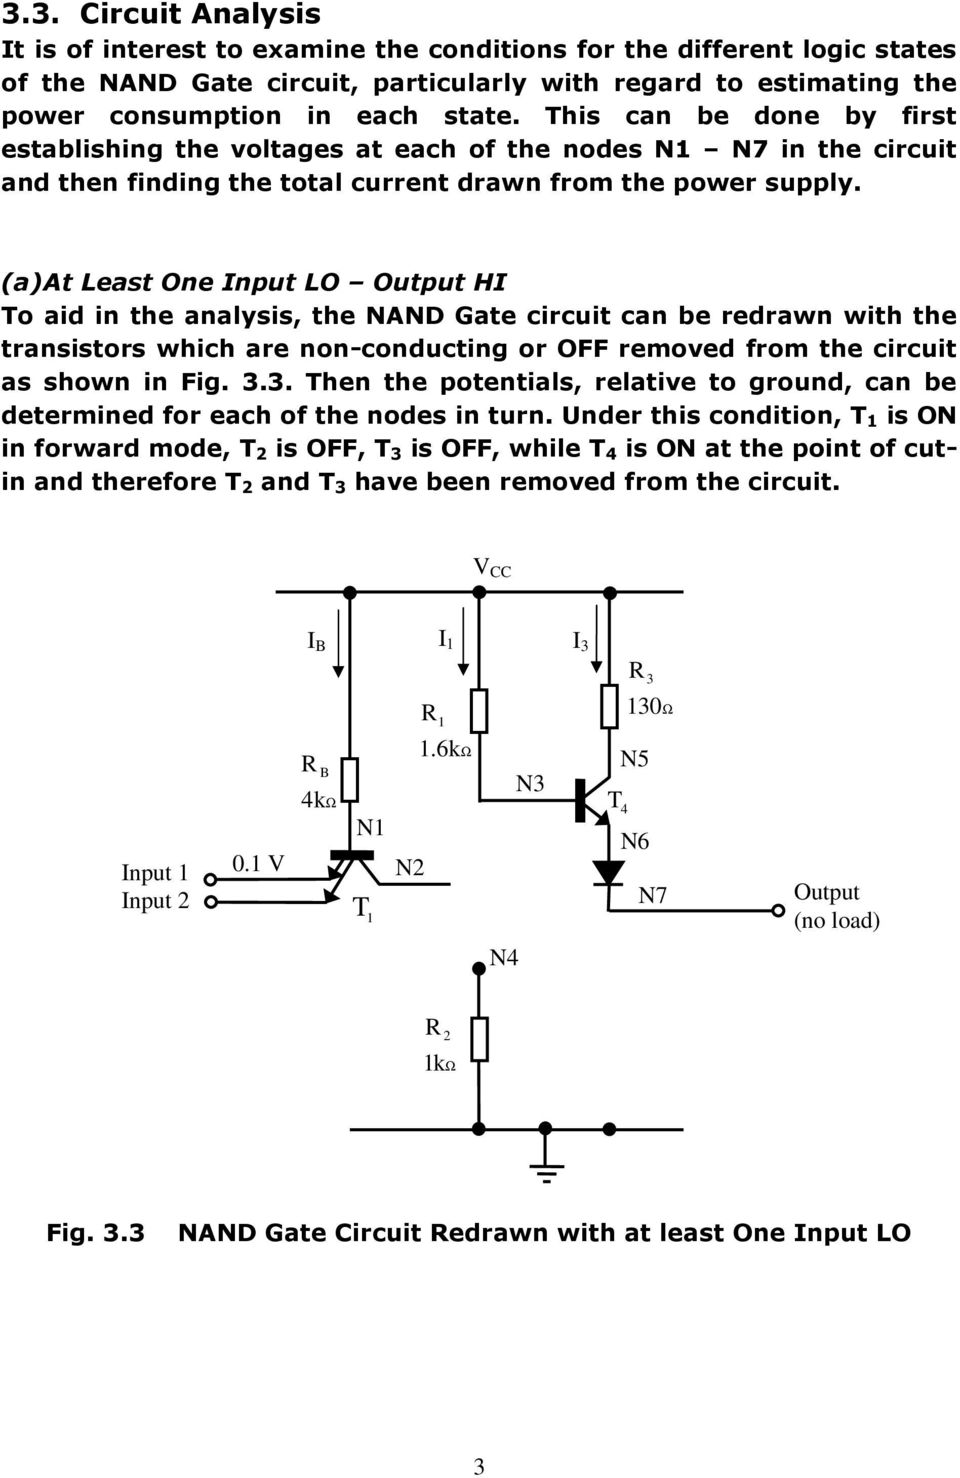 3 The Ttl Nand Gate Fig 31 Multiple Input Emitter Structure Of This Is A Transistor Logic Or Circuit Using At Least One Lo Output Hi To Aid In Analysis